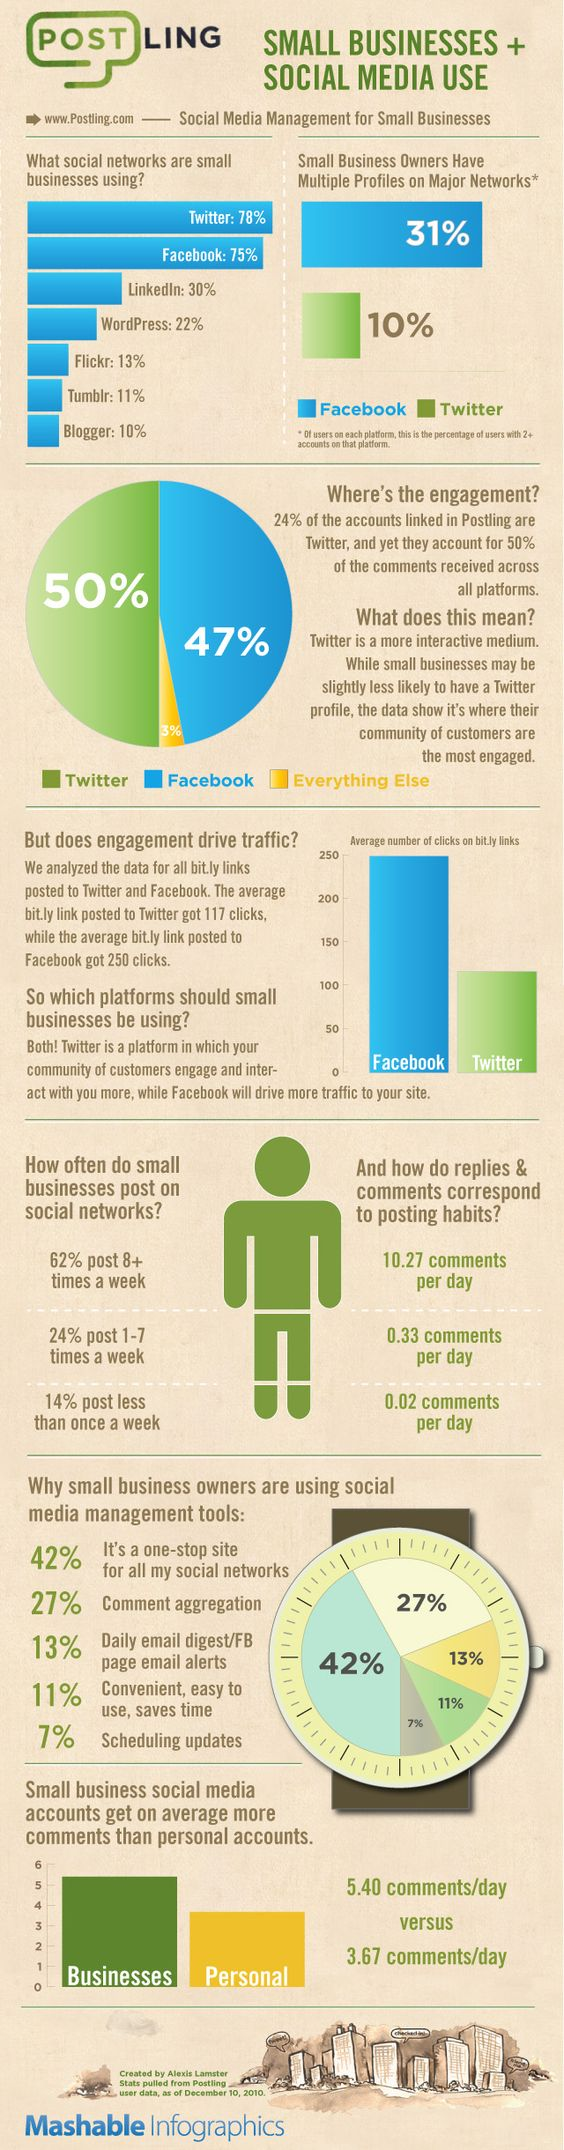 Small business social media use